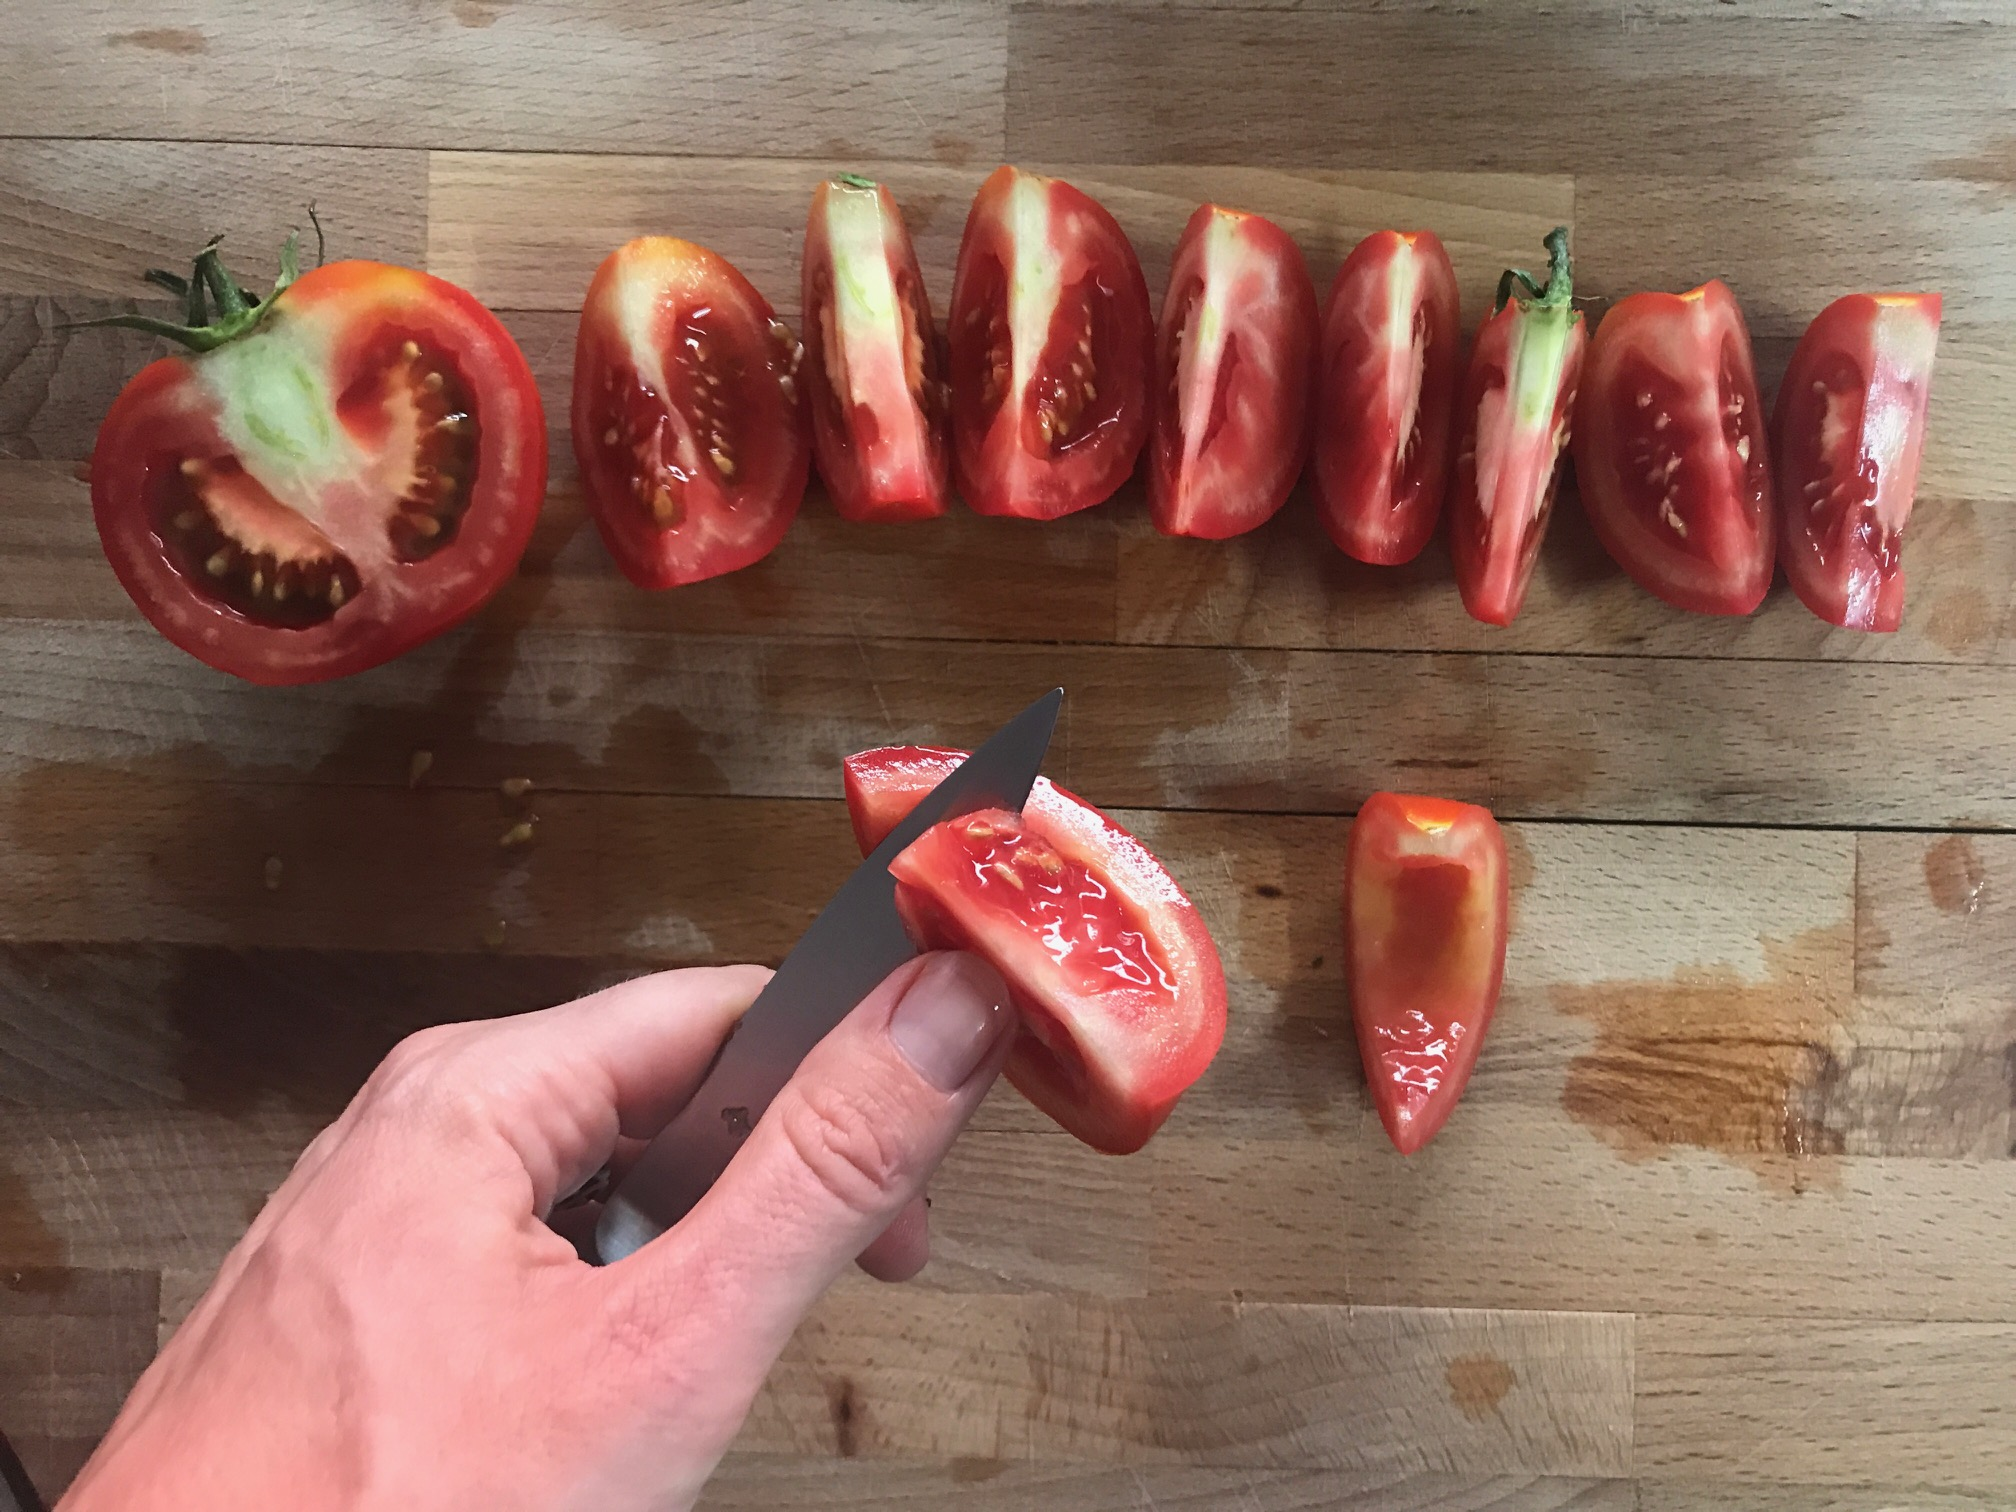 De-seeding tomatoes with a paring knife